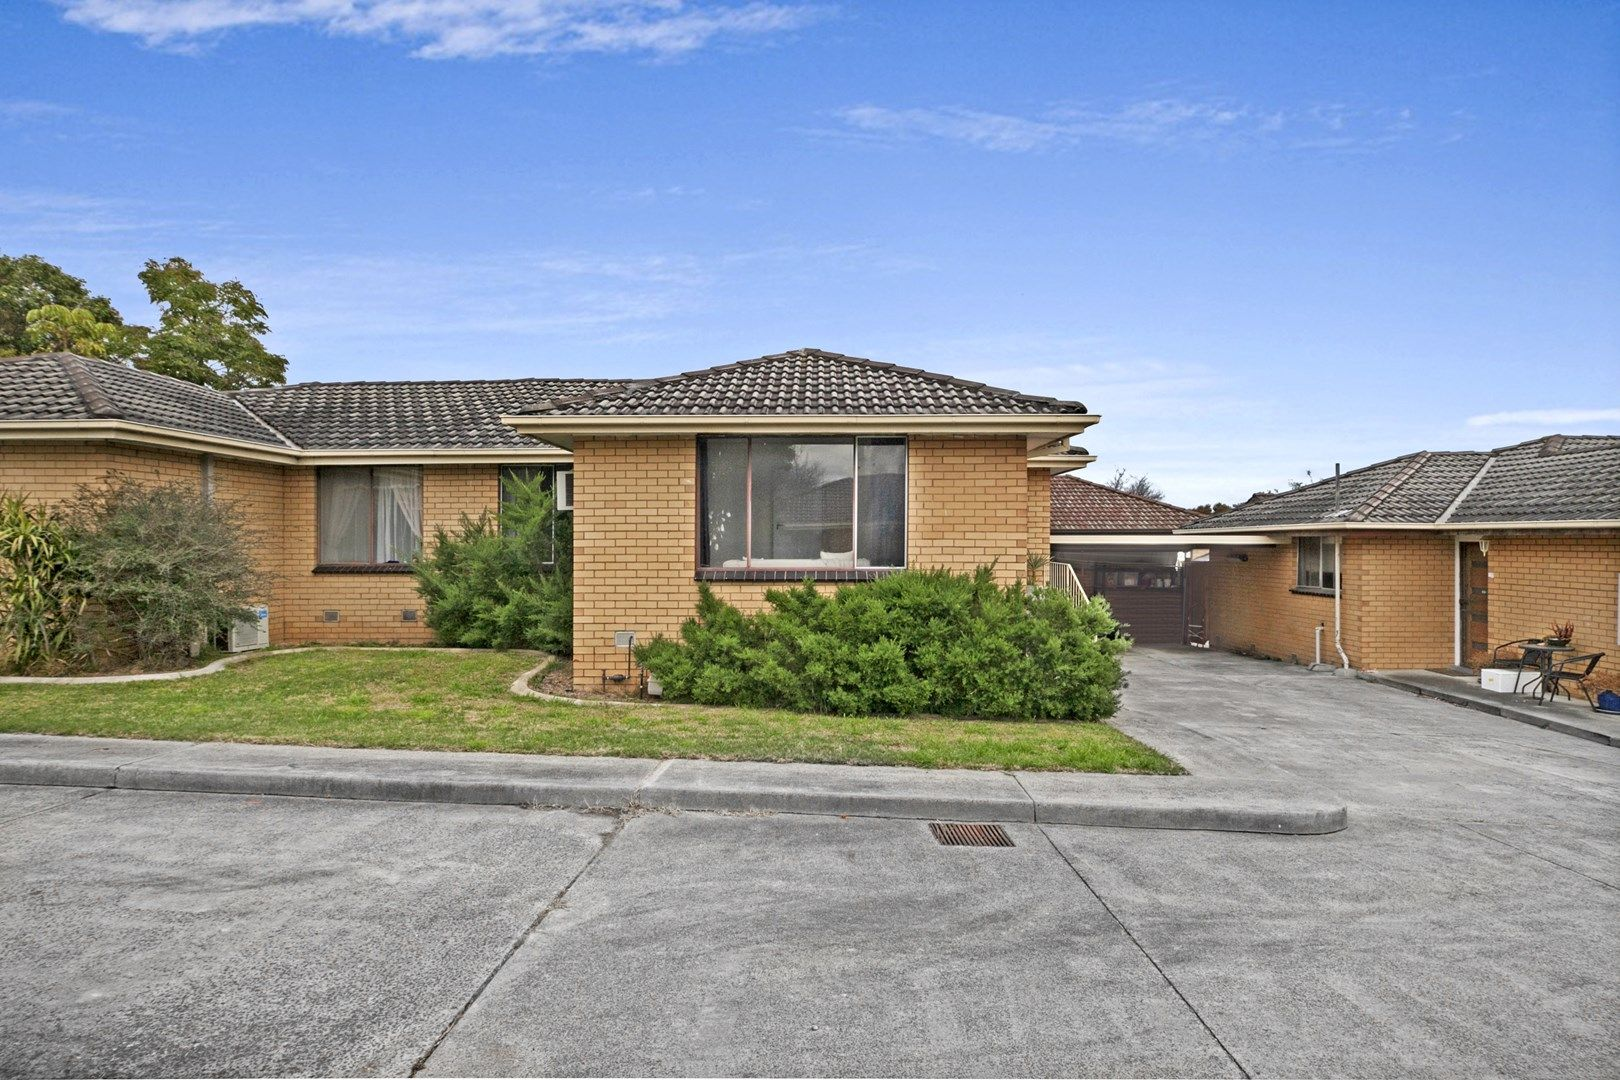 11/60 King George Parade, Dandenong VIC 3175, Image 0